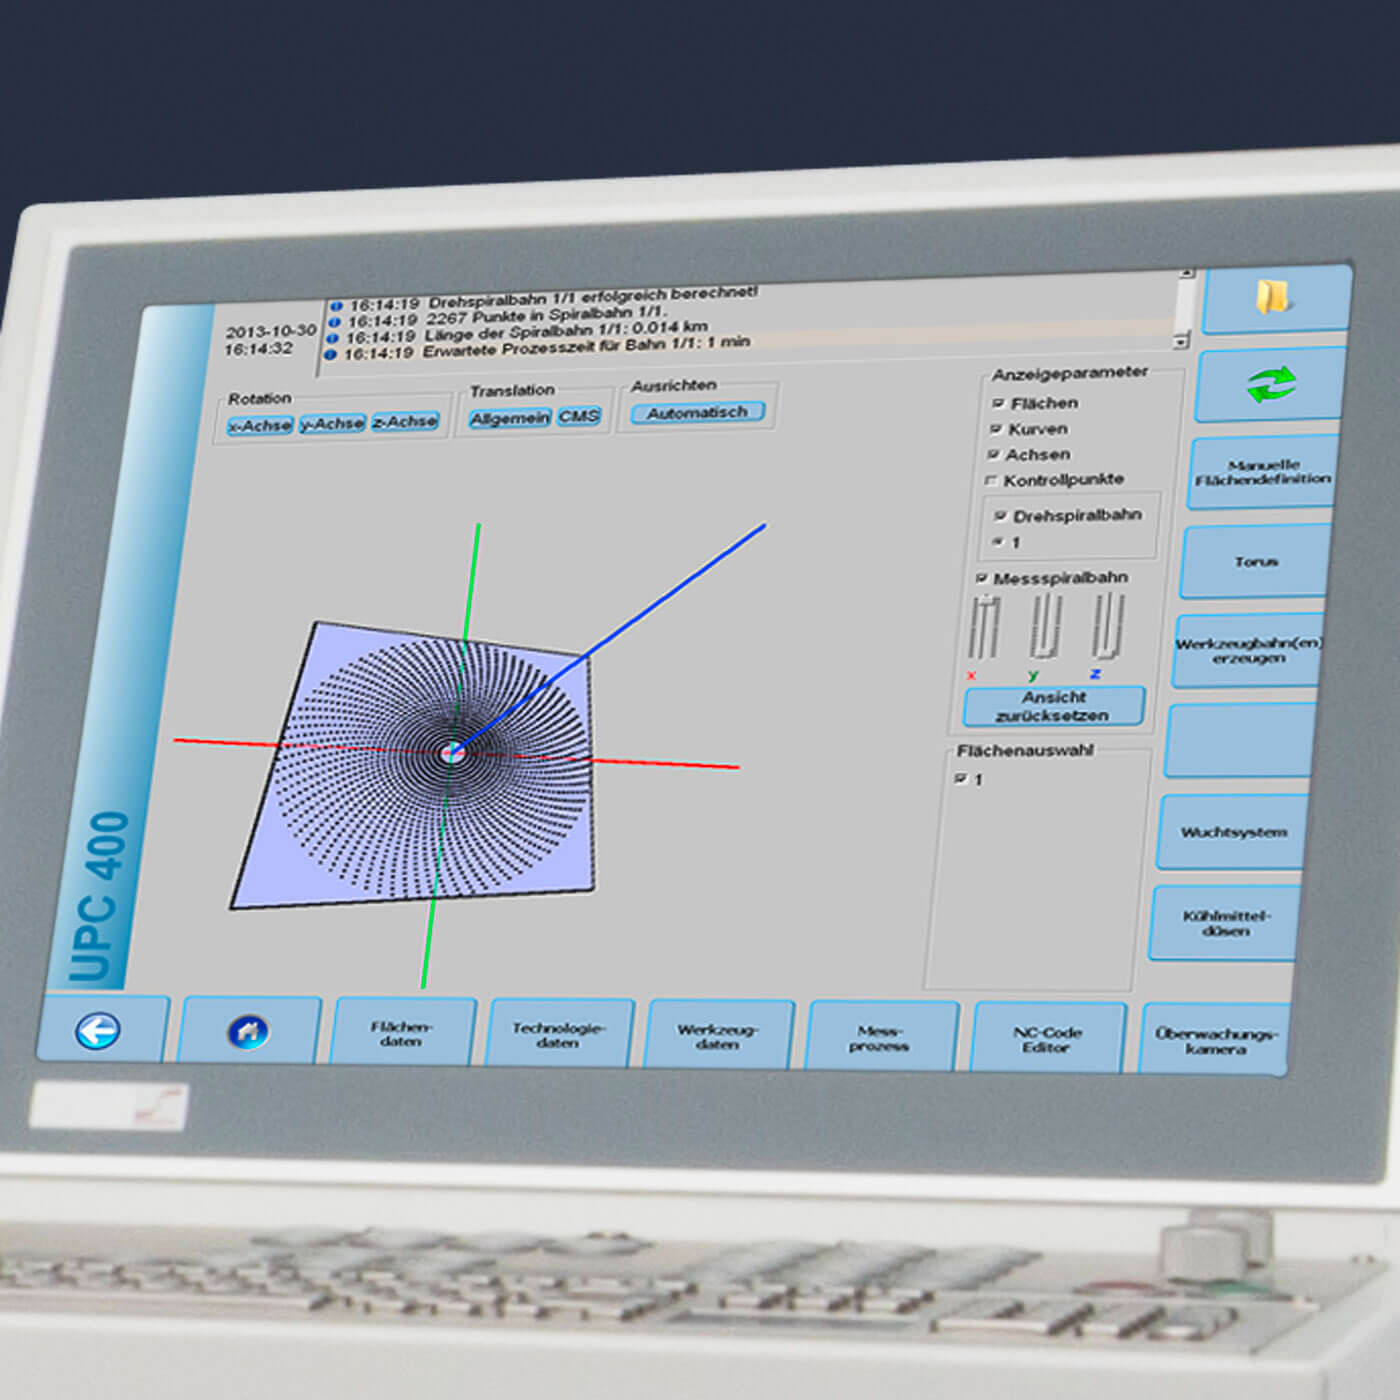 UPC 400 - Display with a 3D visualization of set point surface and spiral tool path